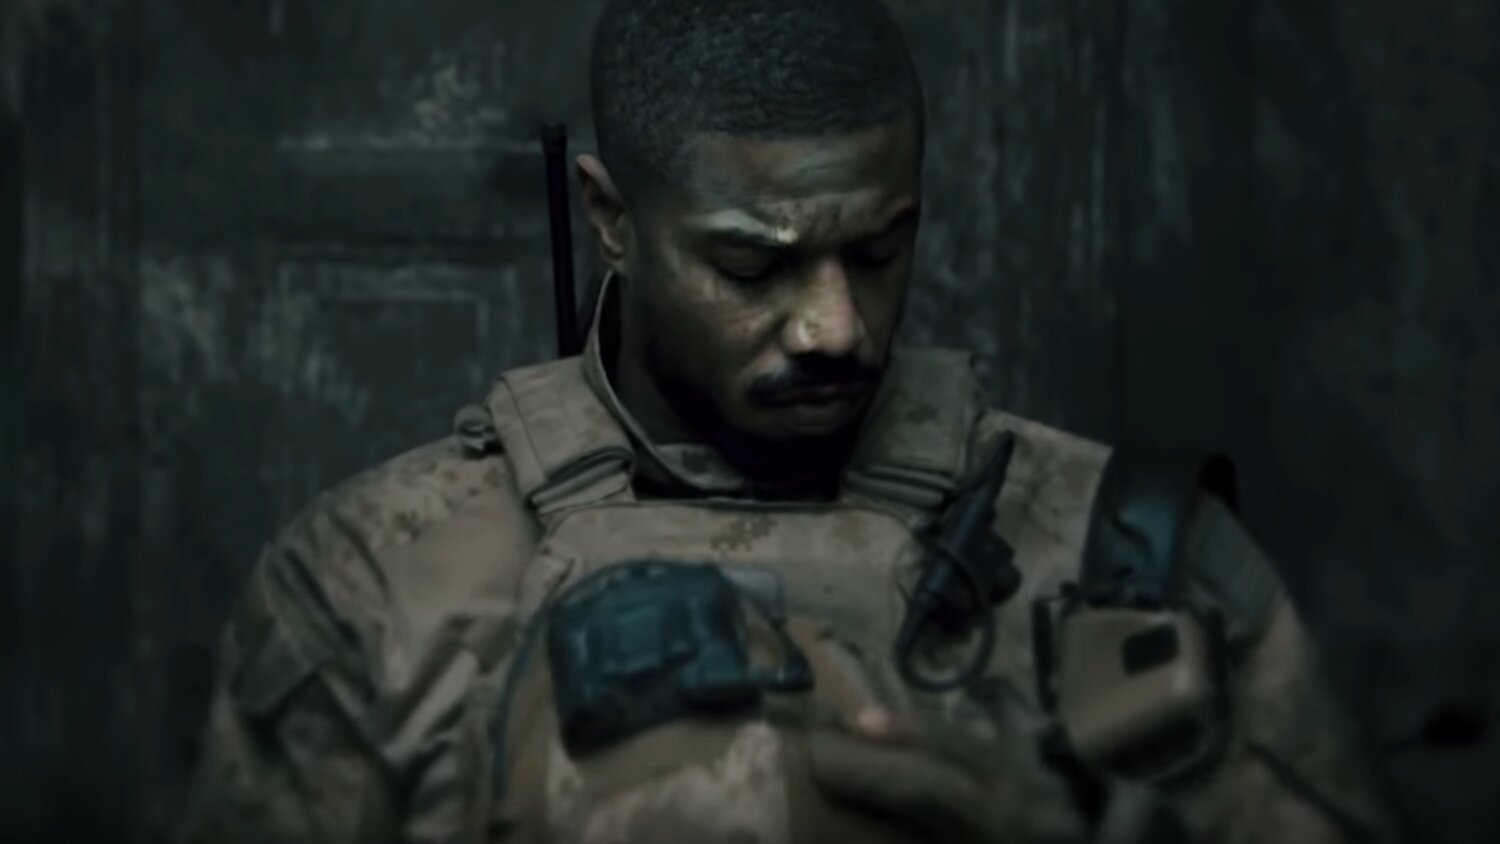 Michael B. Jordan teases new Tom Clancy movie 'Without Remorse'